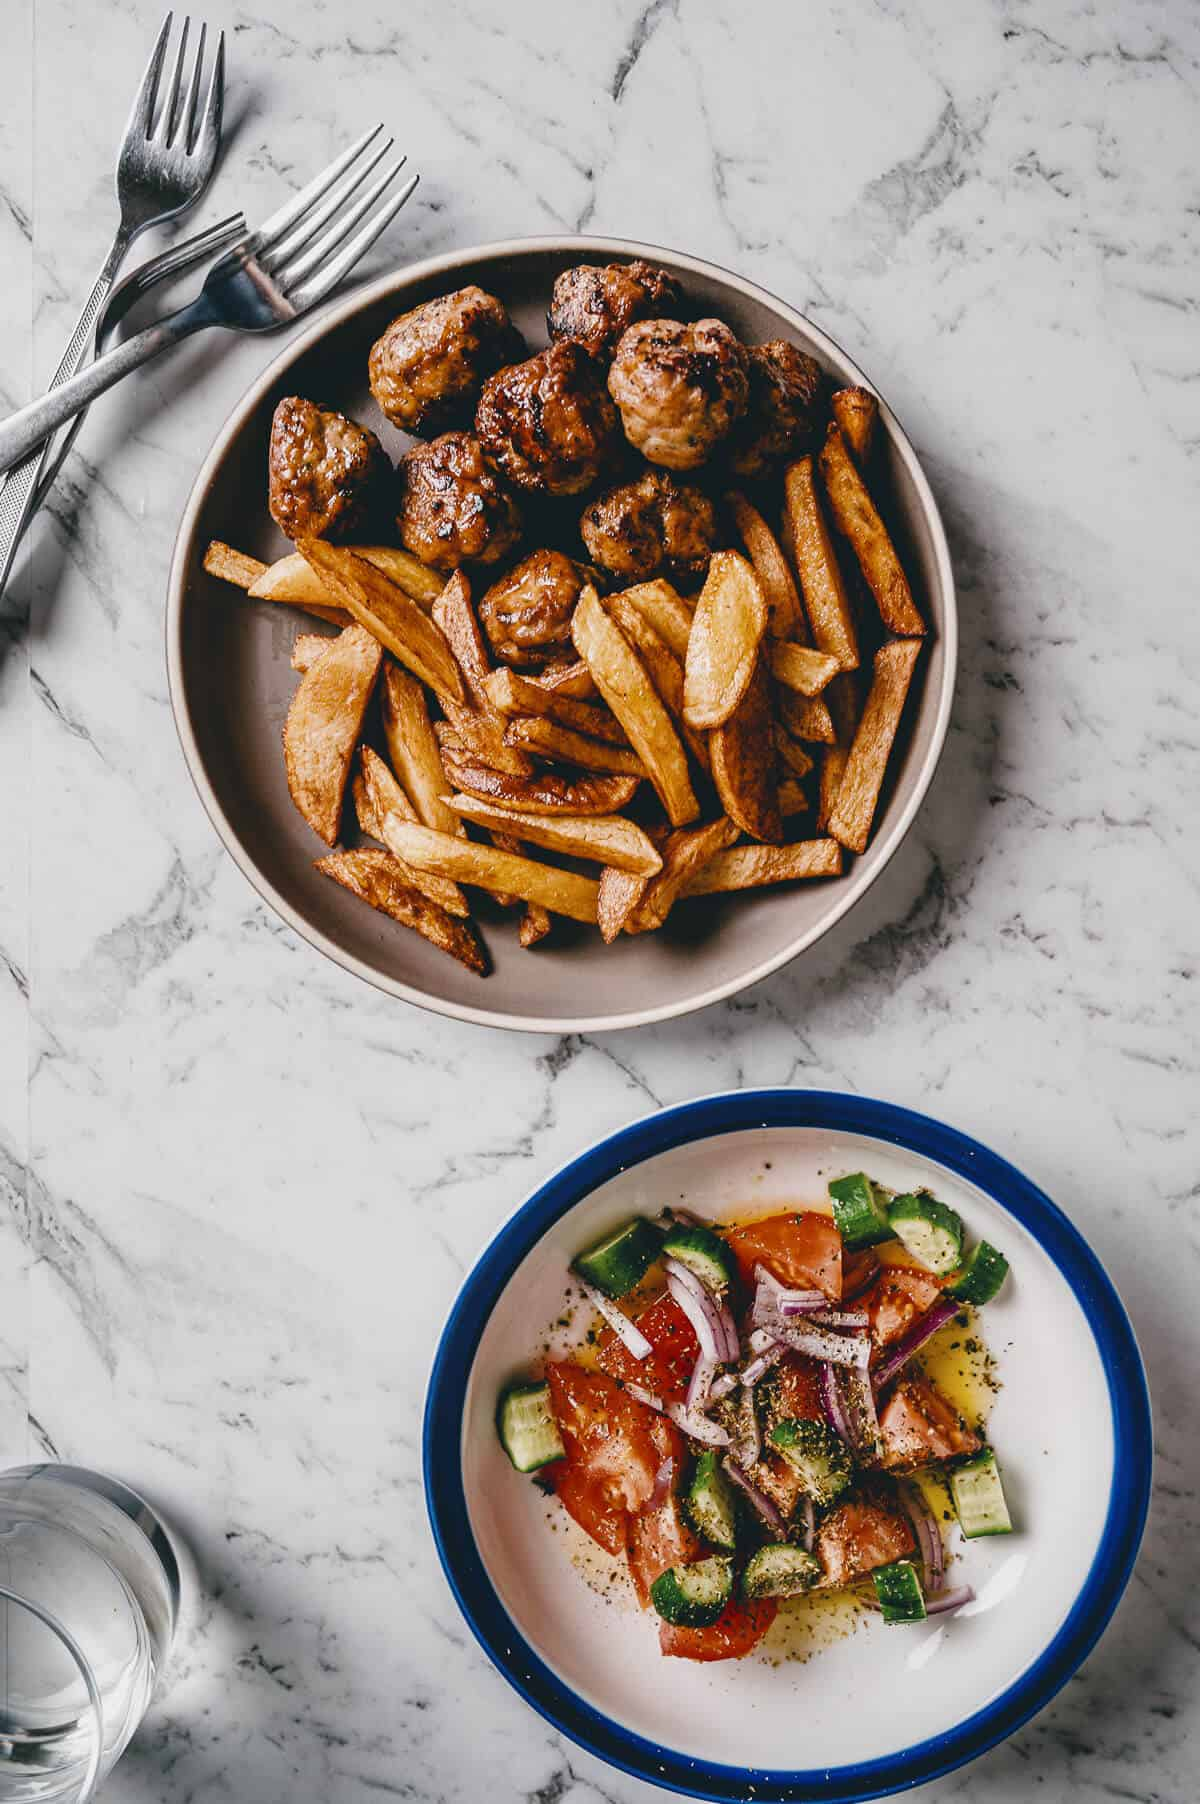 a plate filled with cooked meatballs and fries and a bowl of salad